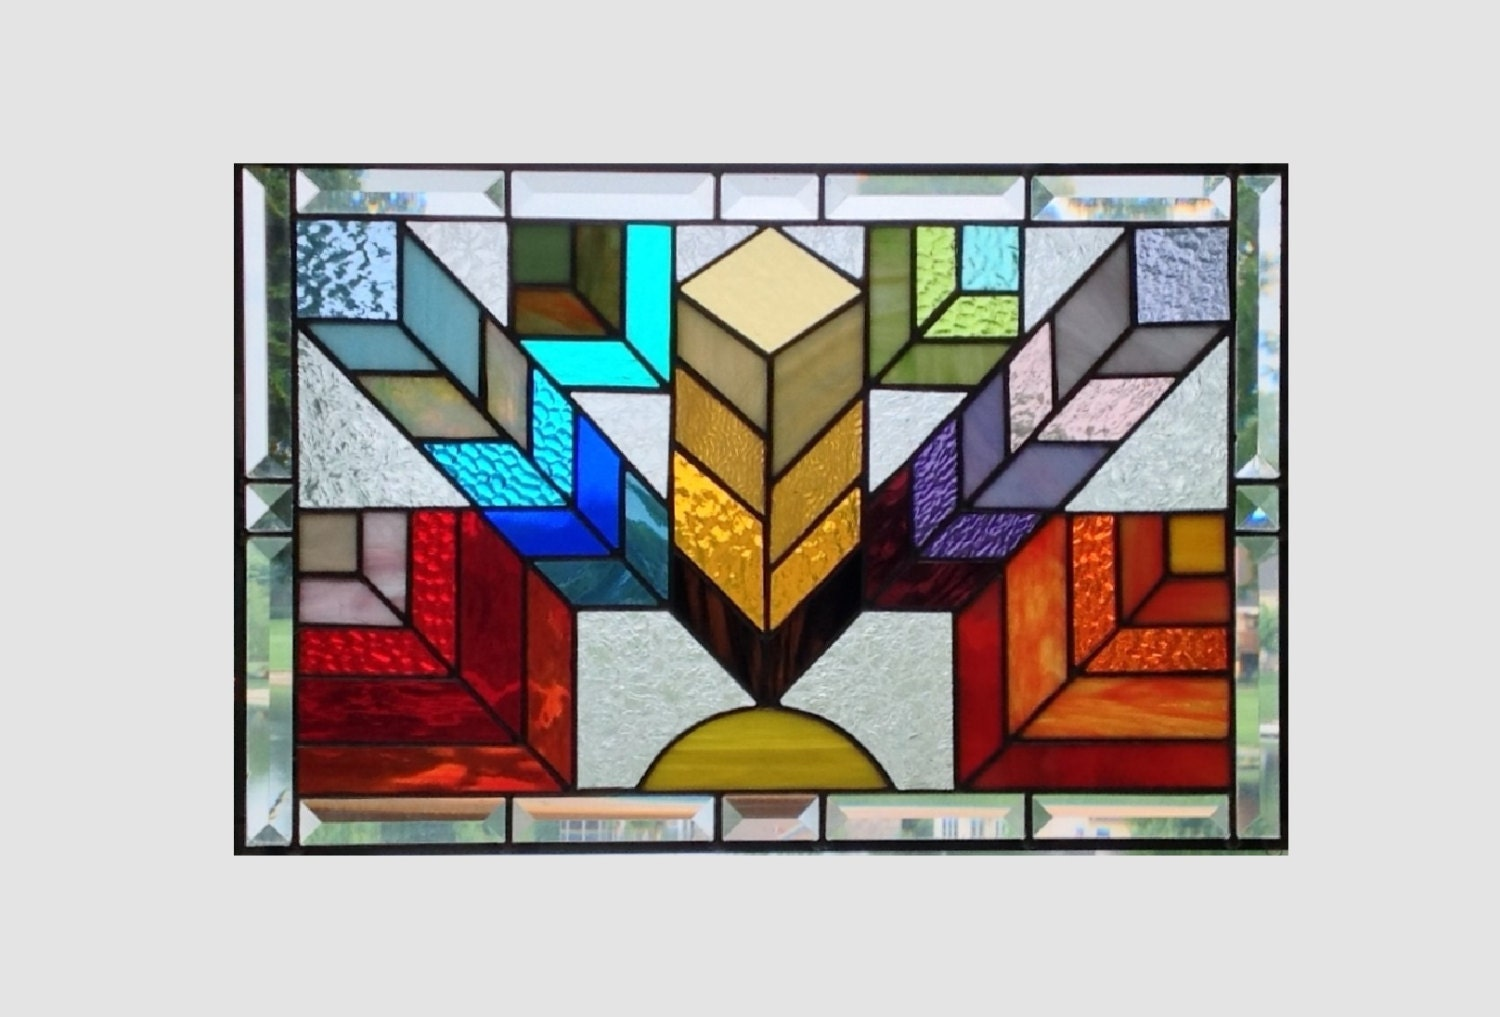 Stained glass window panel arts and crafts rainbow by sghovel for Arts and crafts glass